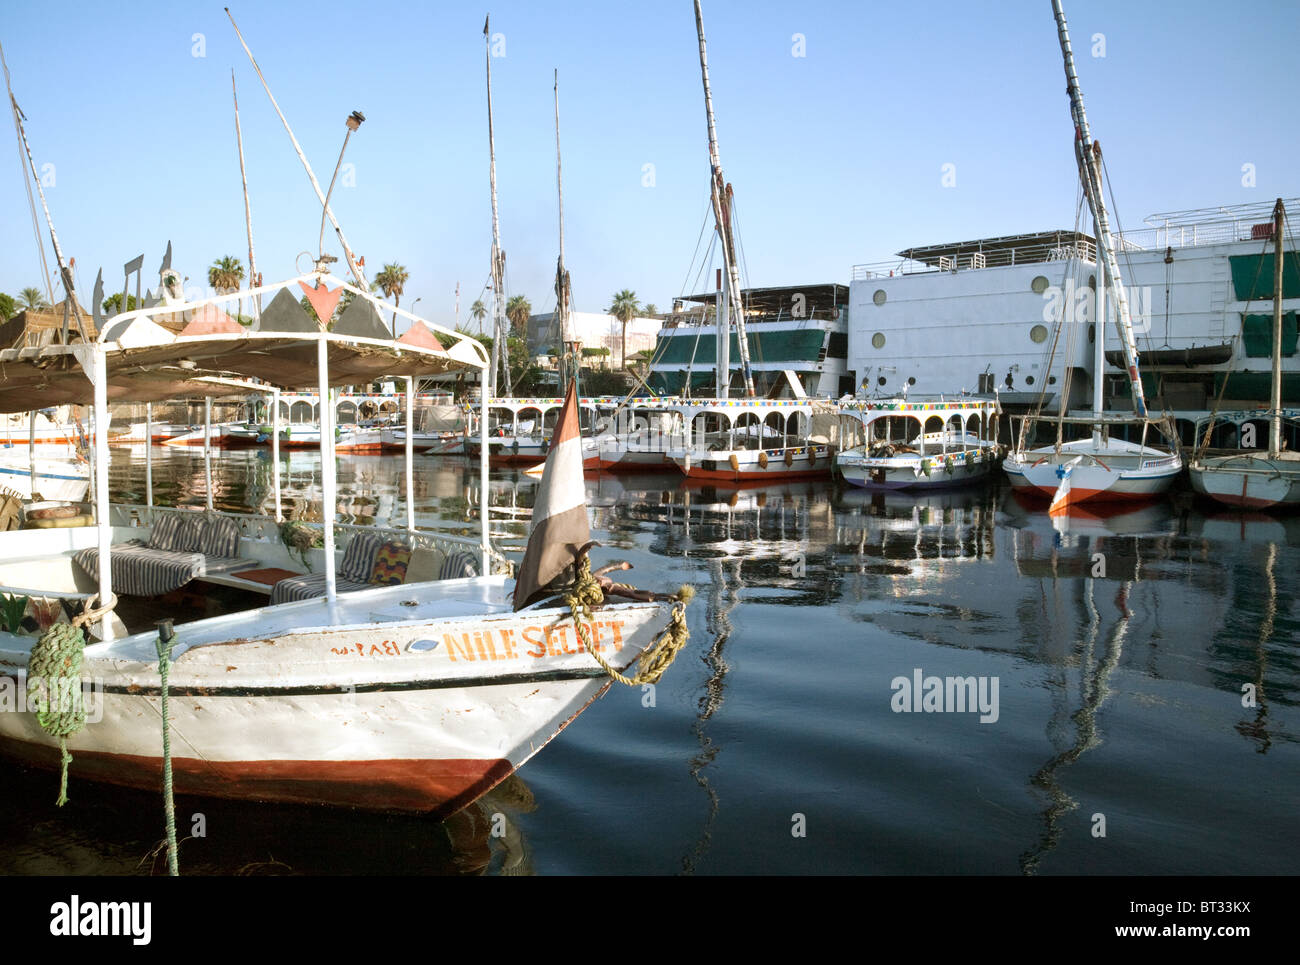 Feluccas tied up in harbour,  the river Nile, Aswan, Upper Egypt - Stock Image